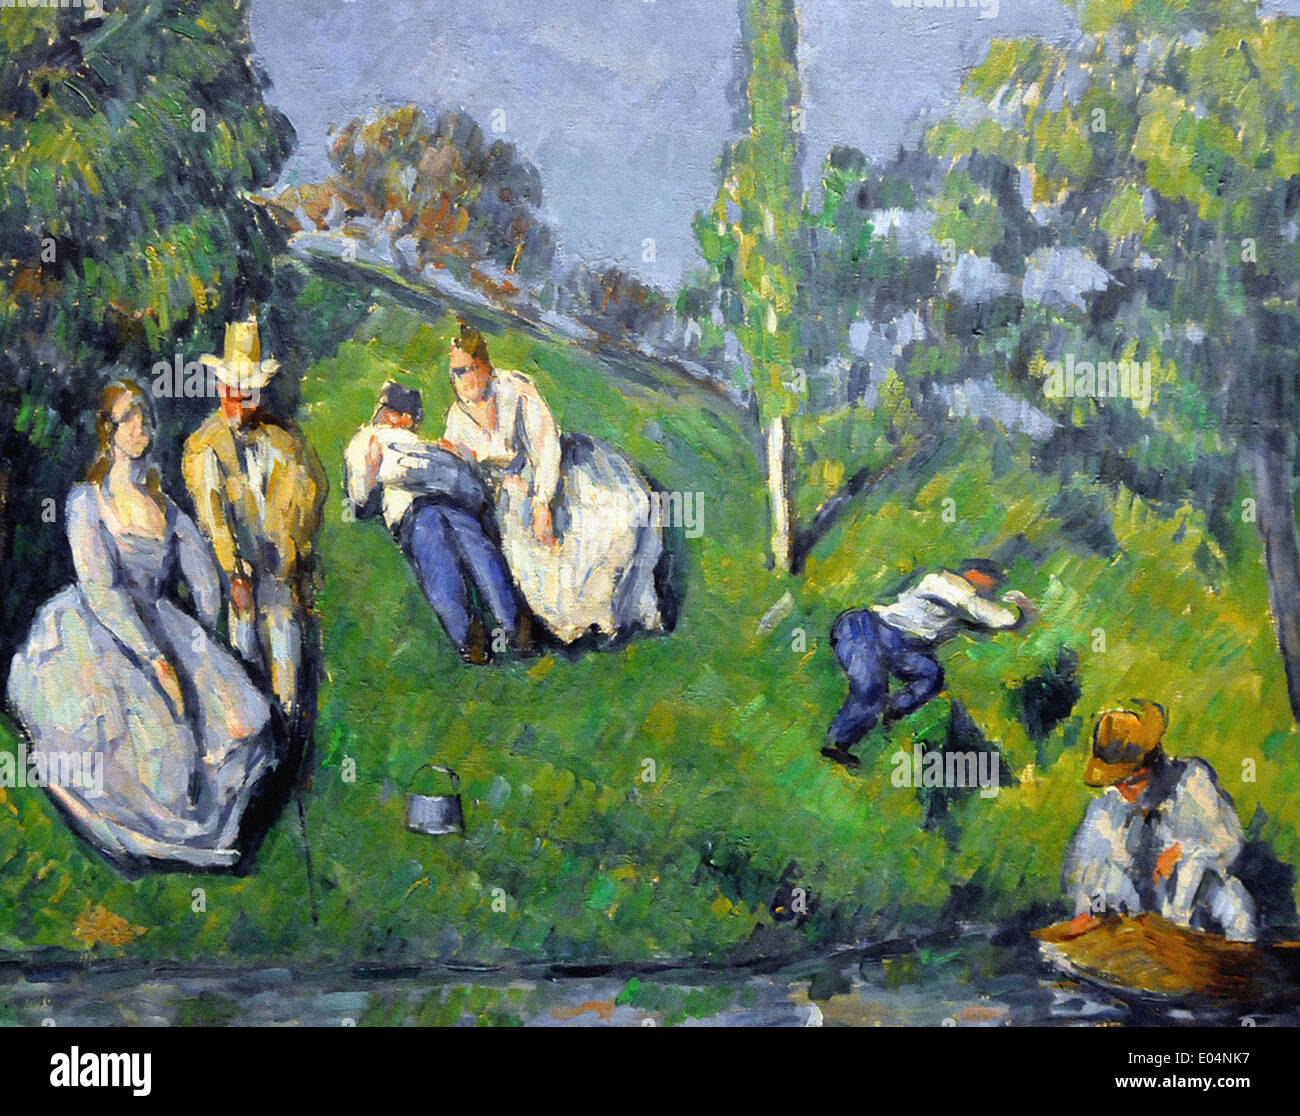 Paul Cezanne The Pond - Stock Image